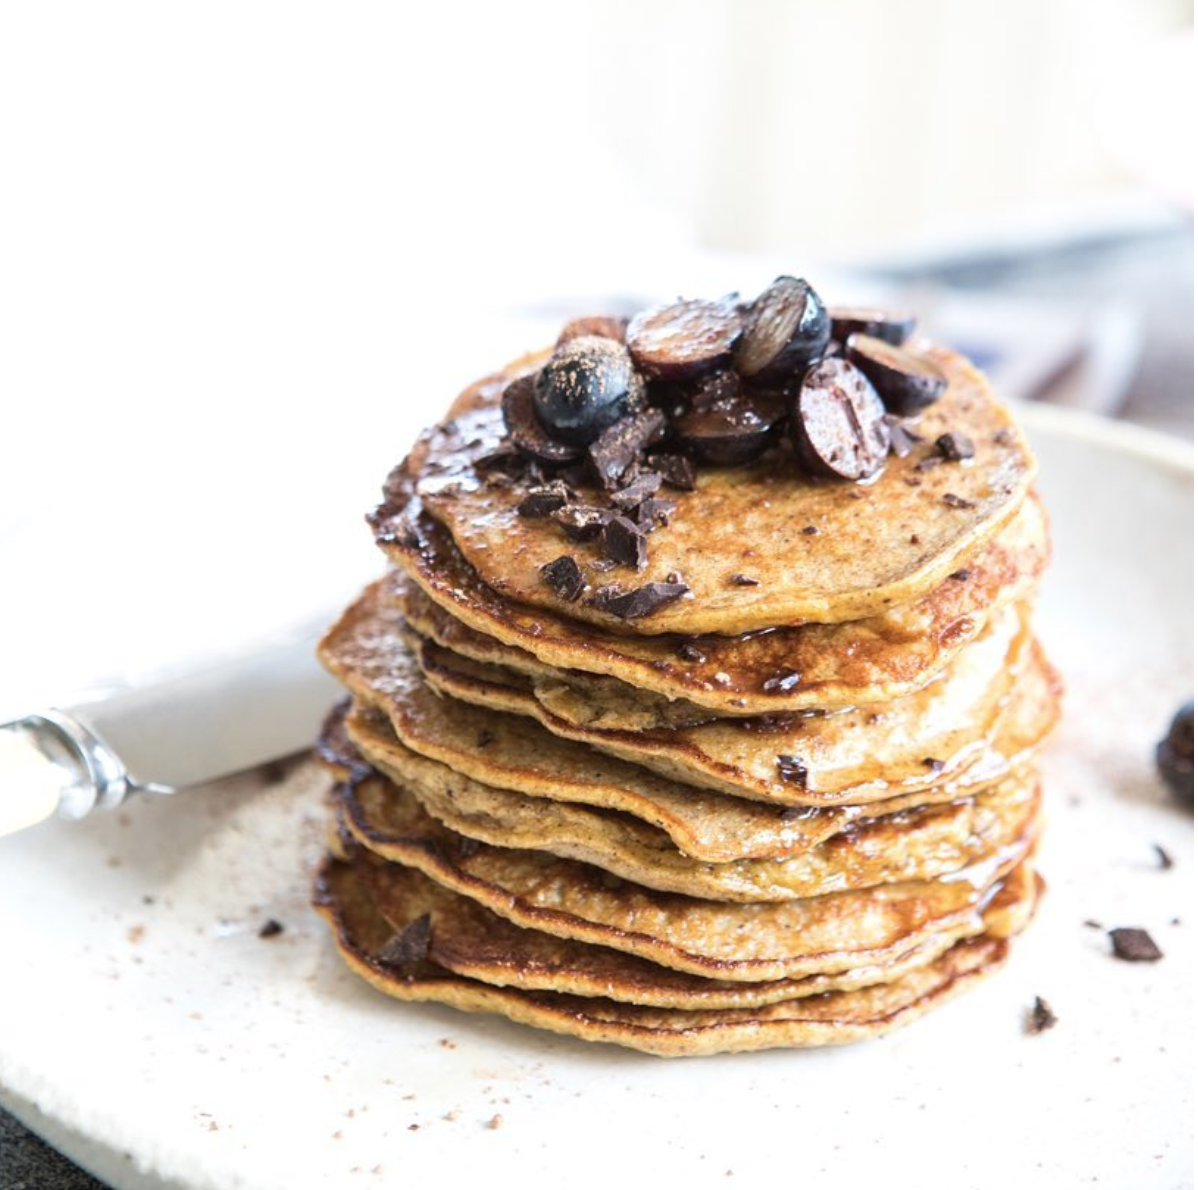 Nadia's insanely simple (and tasty) 4-ingredient pancake recipe